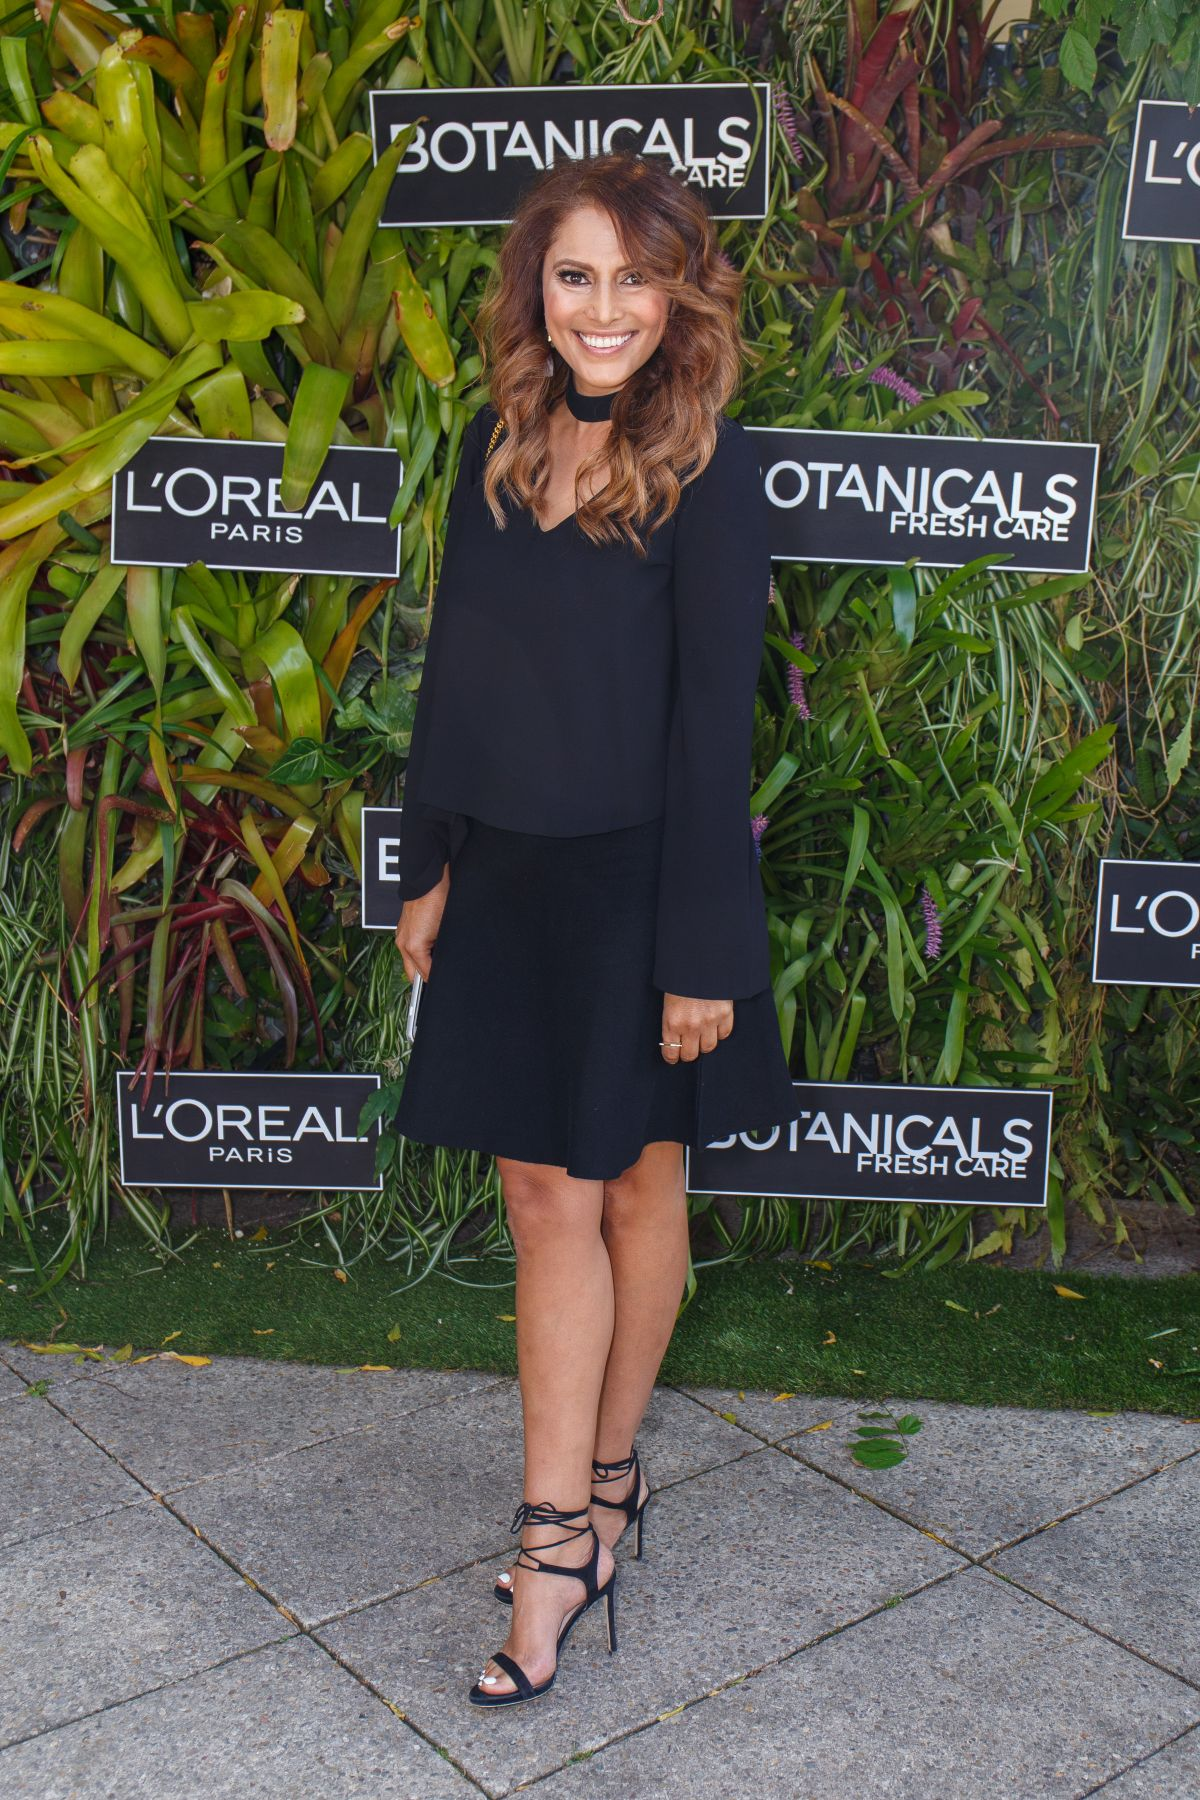 SALLY OBERMERDER at Botanicals Fresh Care Ambassador Launch in Sydney 04/19/2017